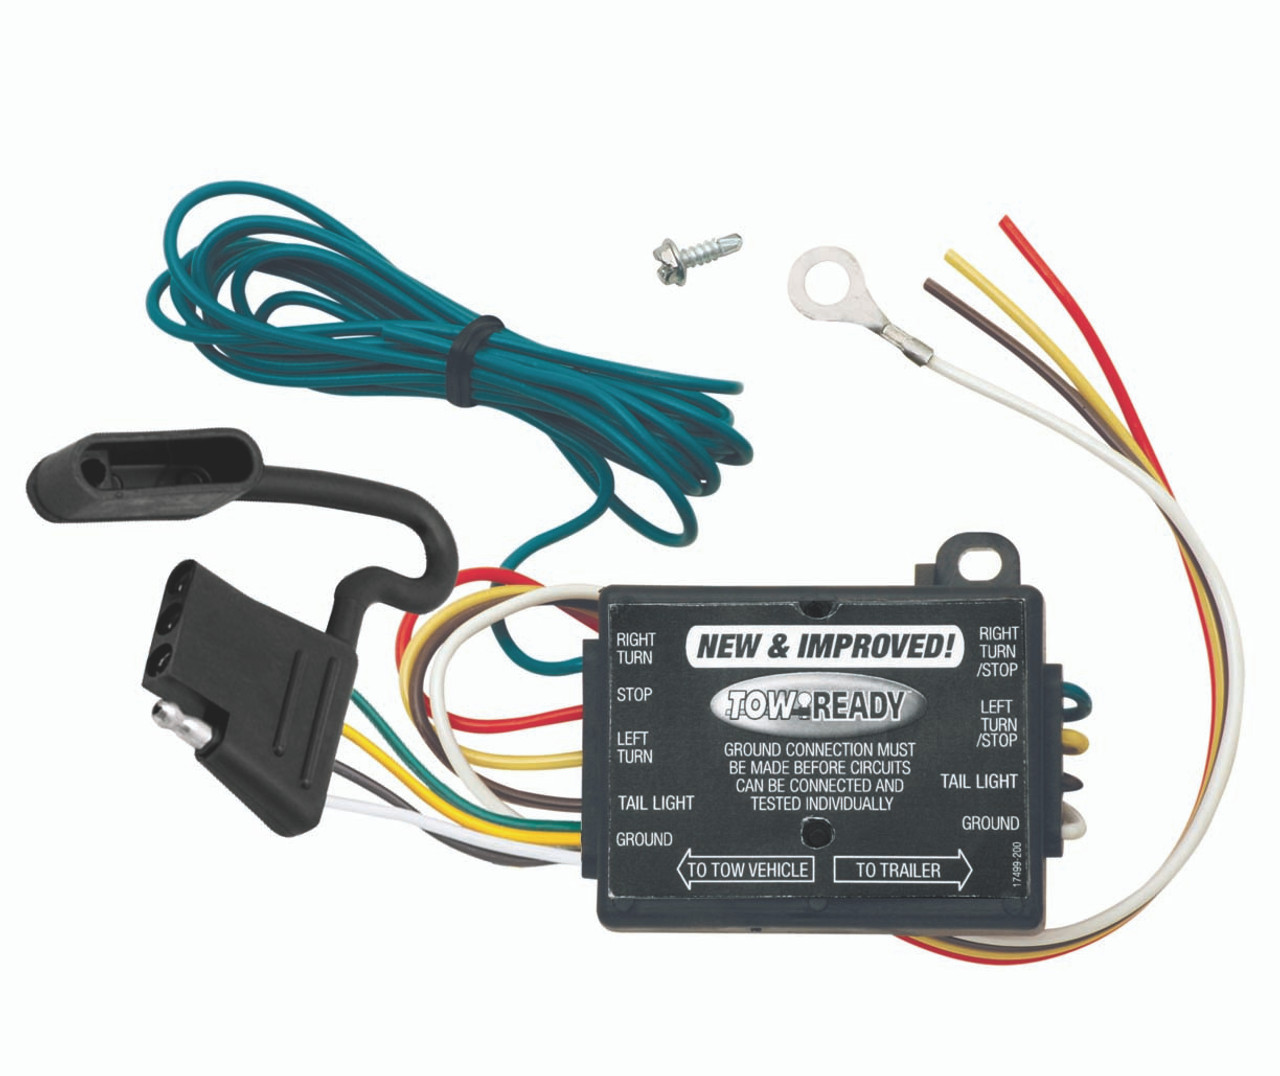 hight resolution of 119130 3 wire vehicle to 2 wire trailer upgraded taillight converter